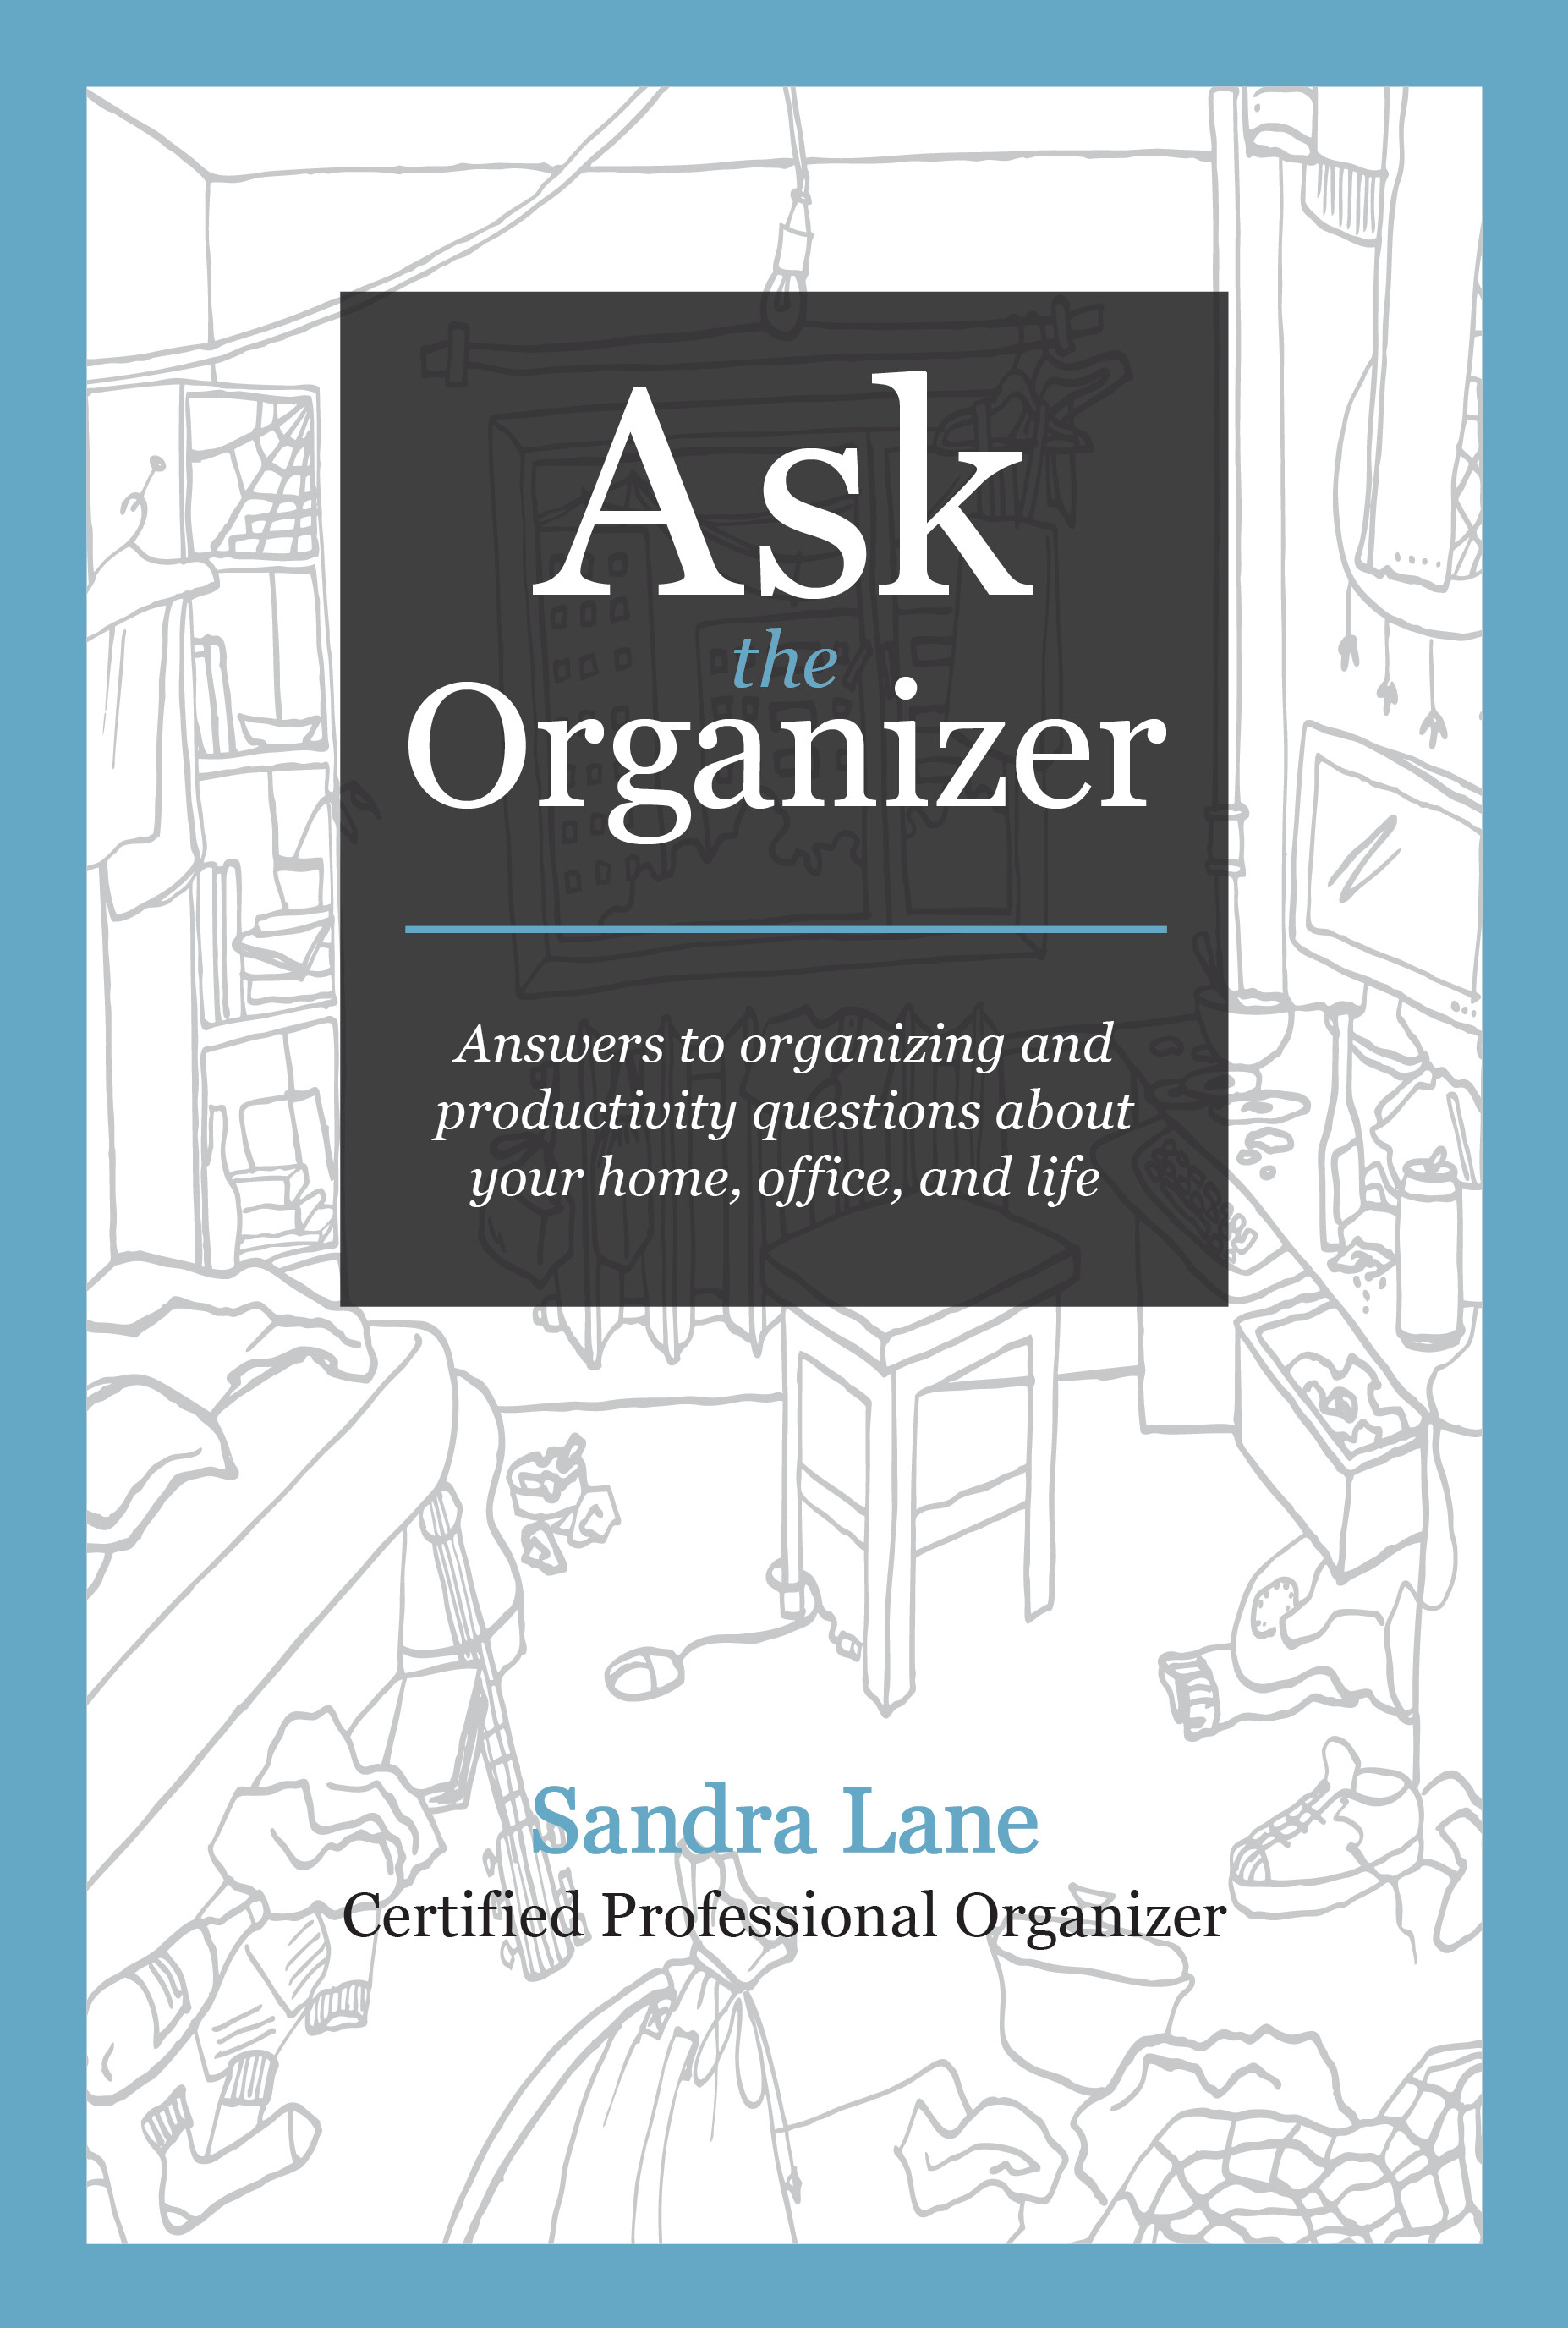 Ask the Organizer by Sandra Lane